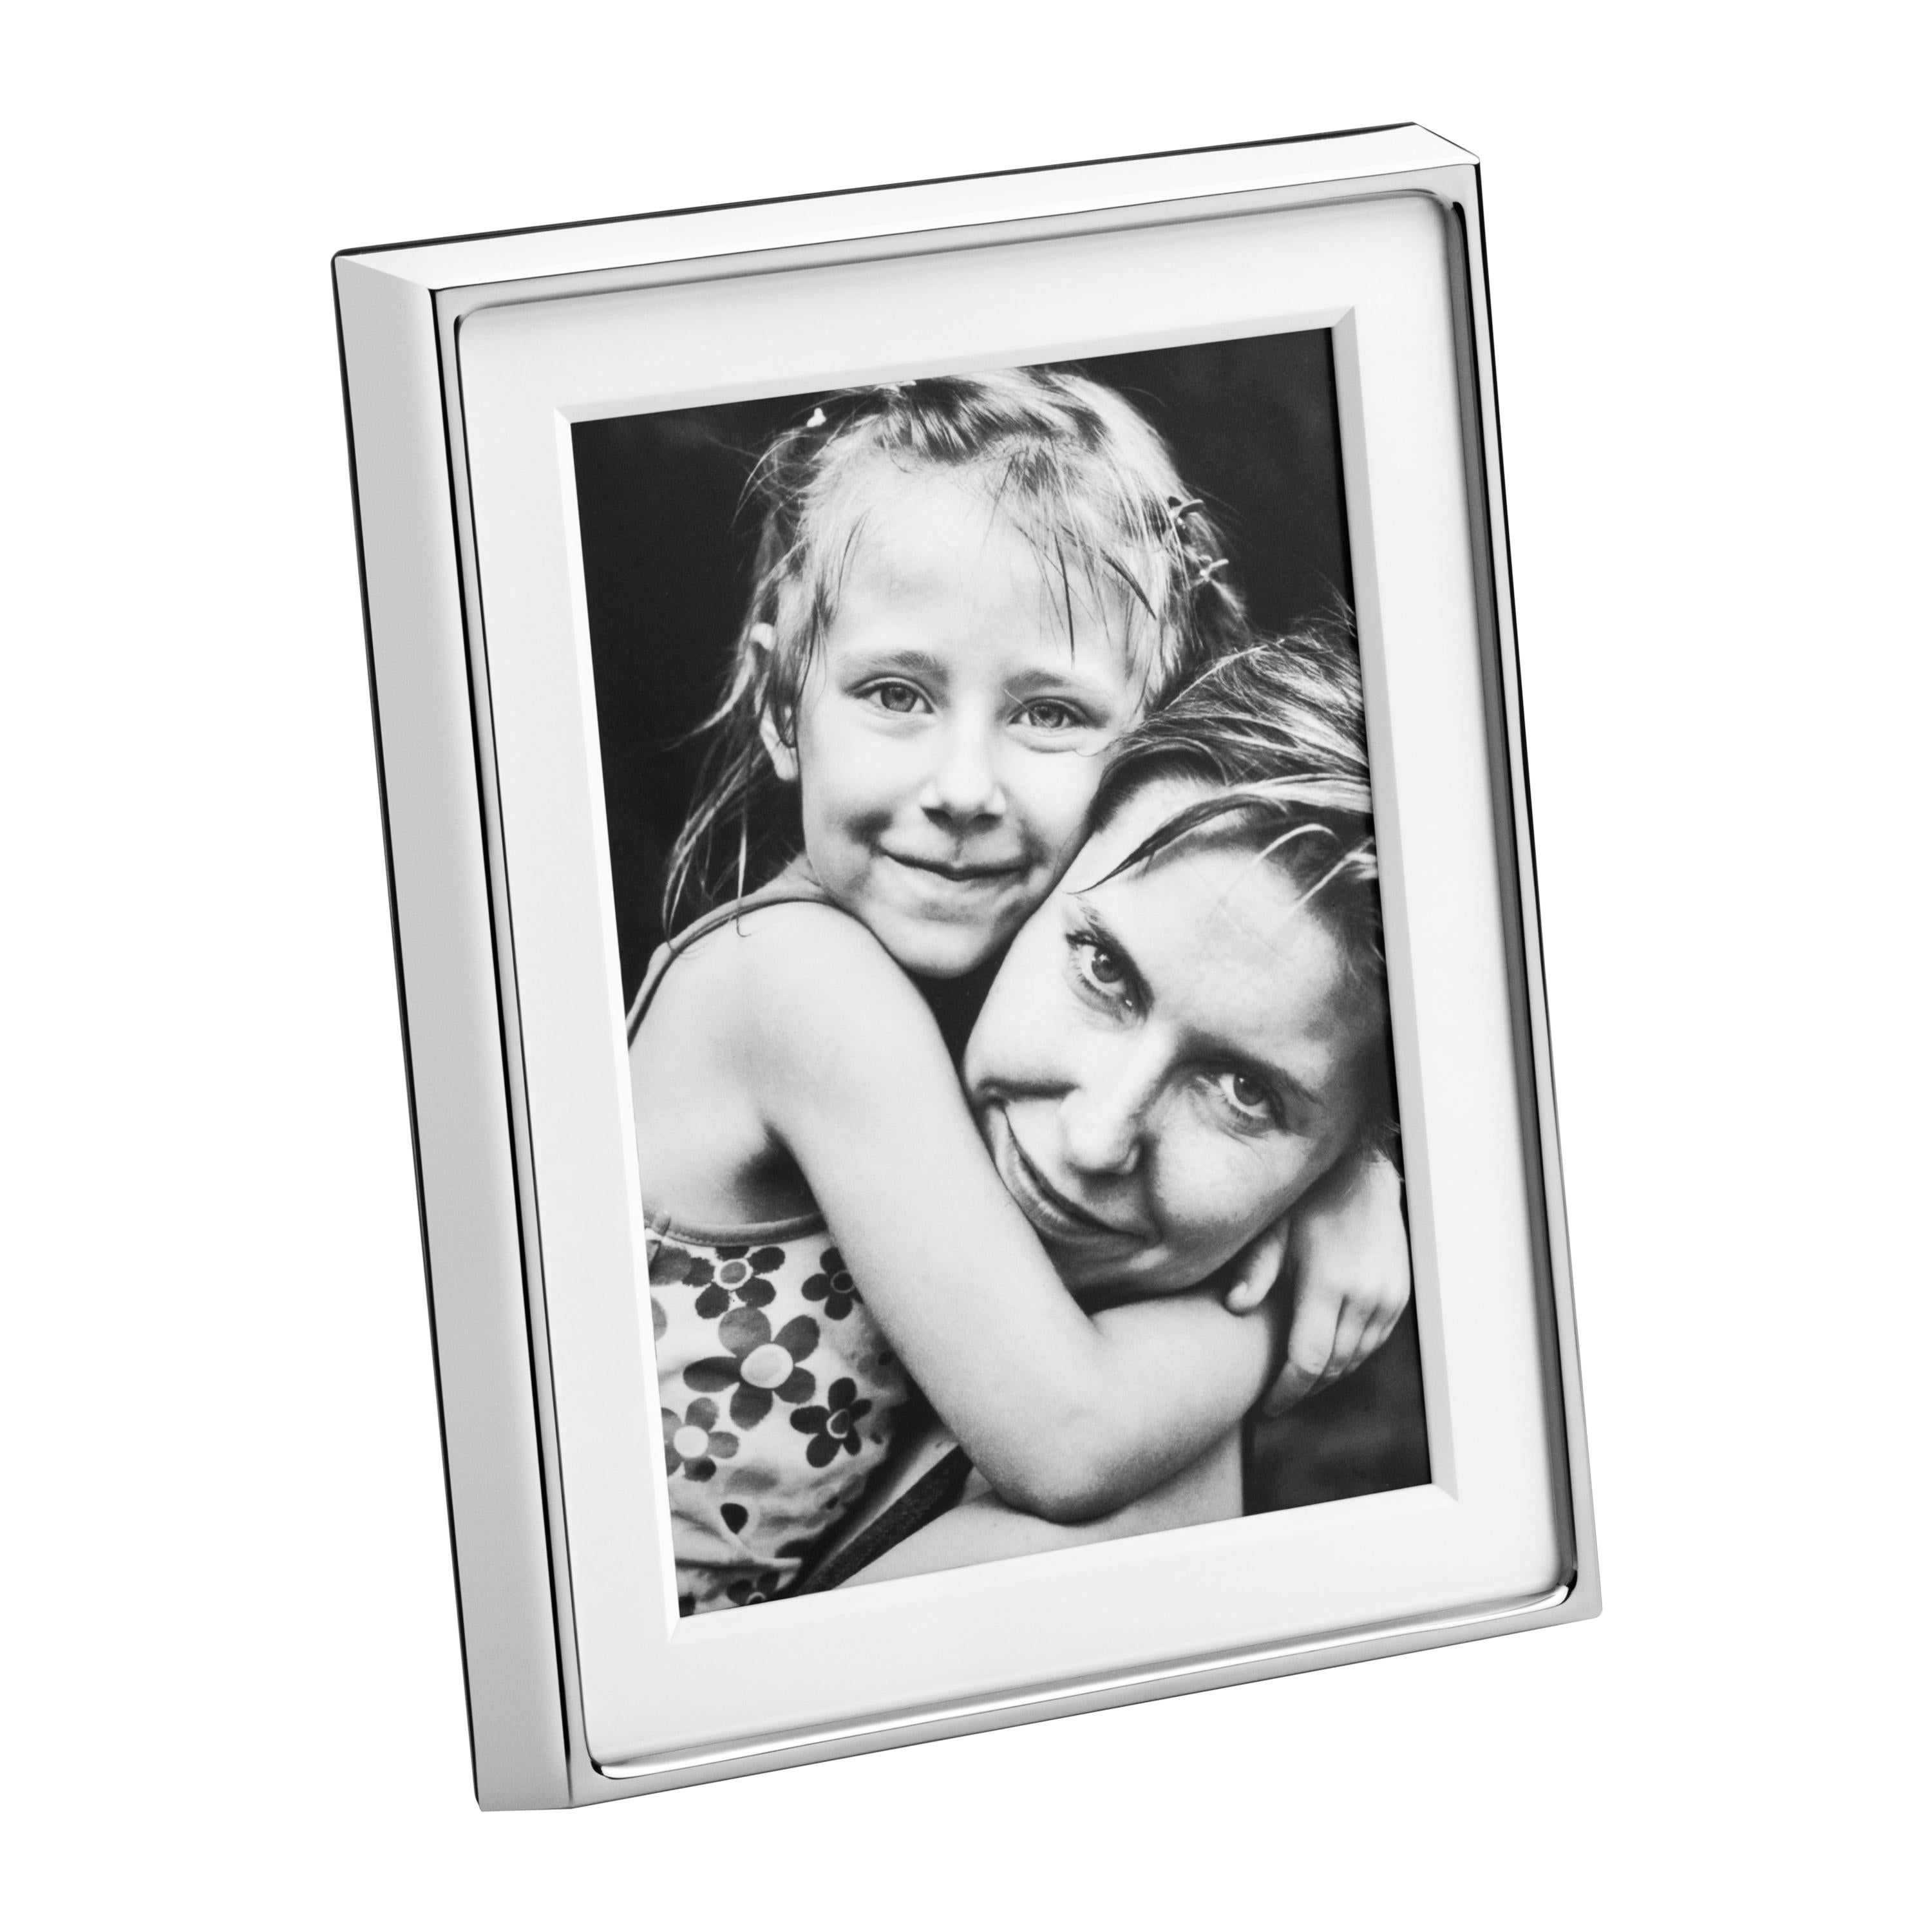 Deco Picture Frame in Stainless Steel Mirror Finish by Georg Jensen